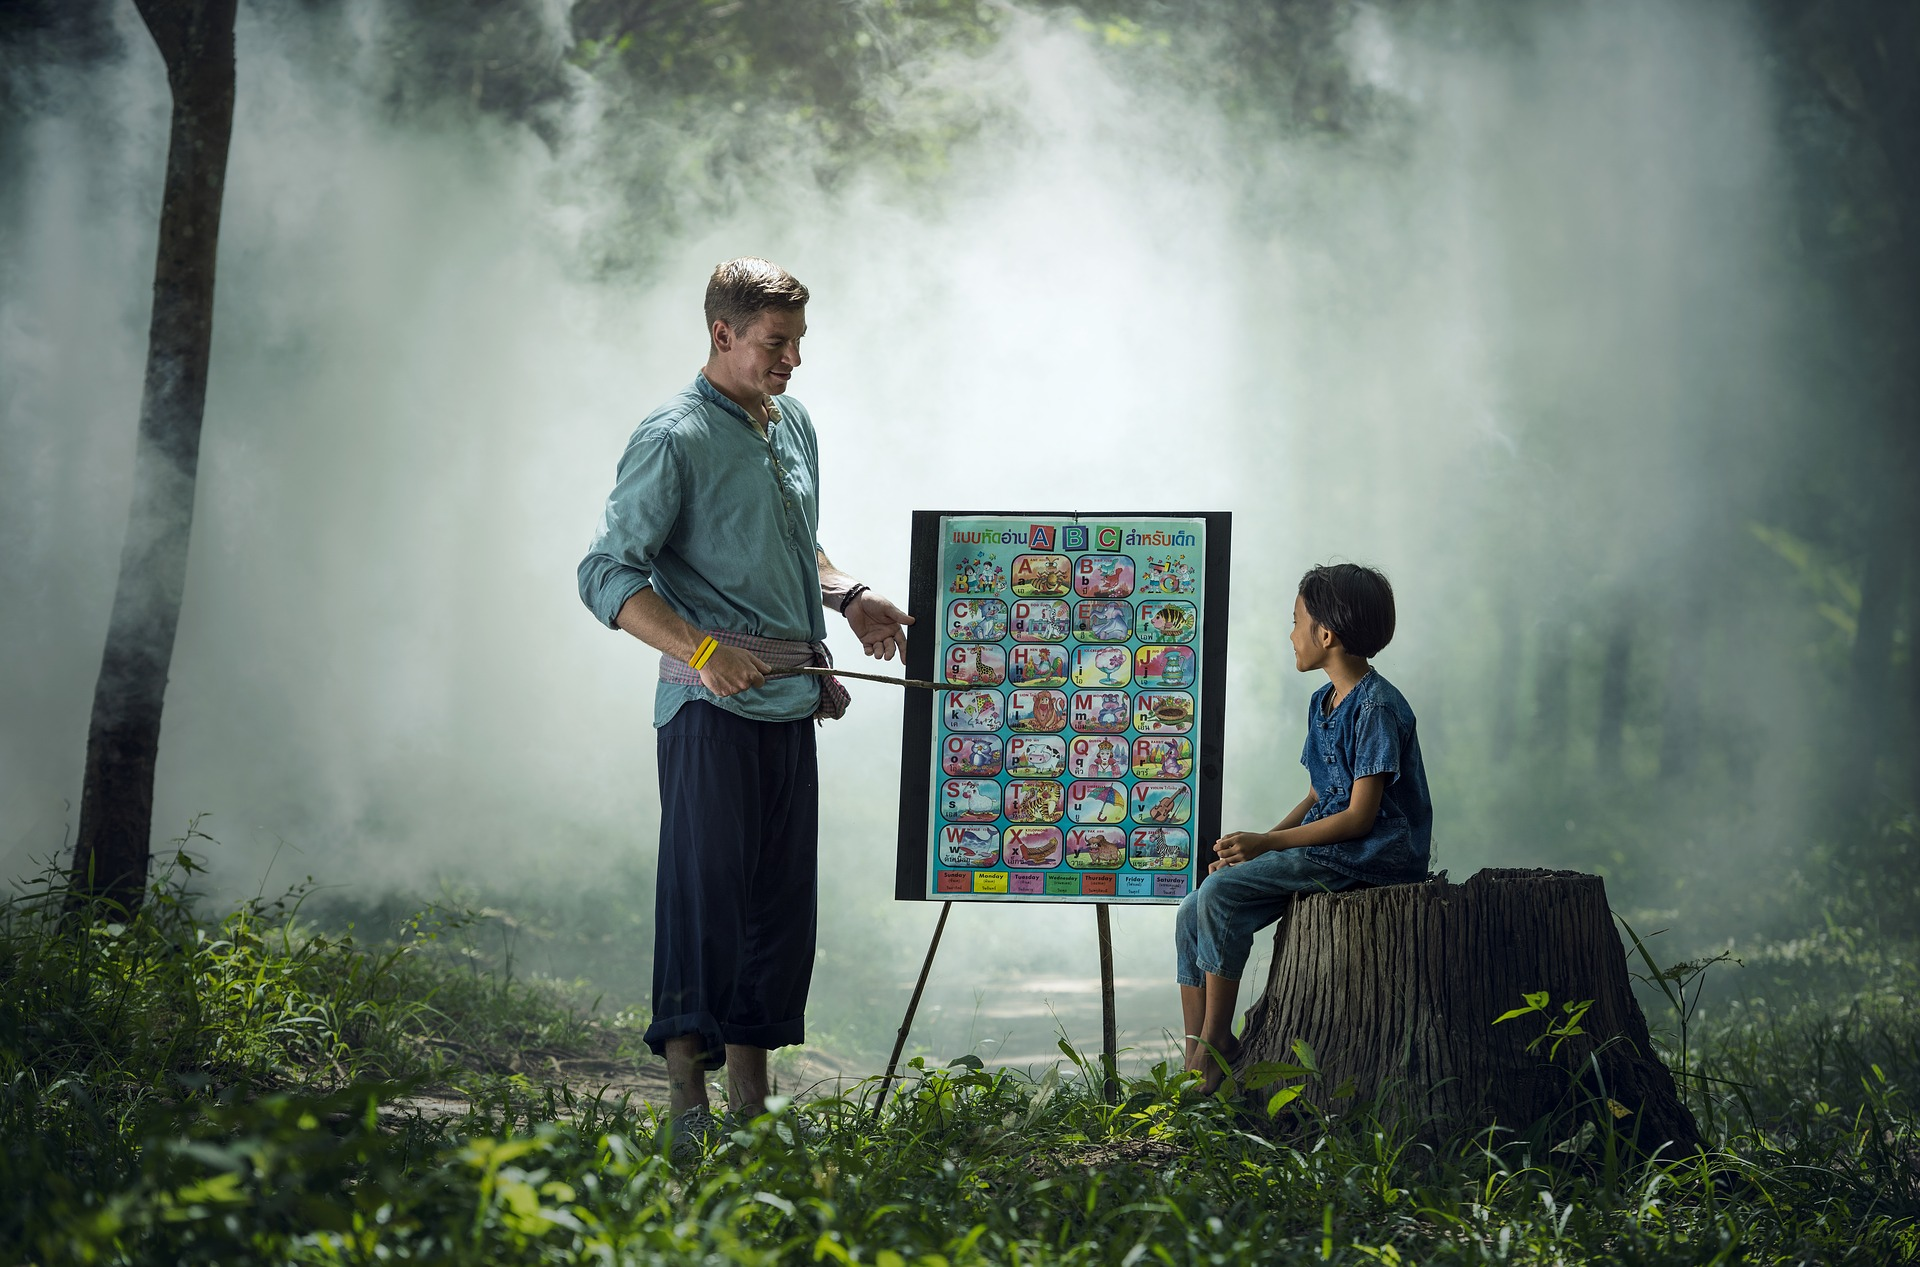 Setting: Forest, misty background. A man stands at white board with pointer stick. A child sits on tree trucnk looking at drawings on whiteboard.